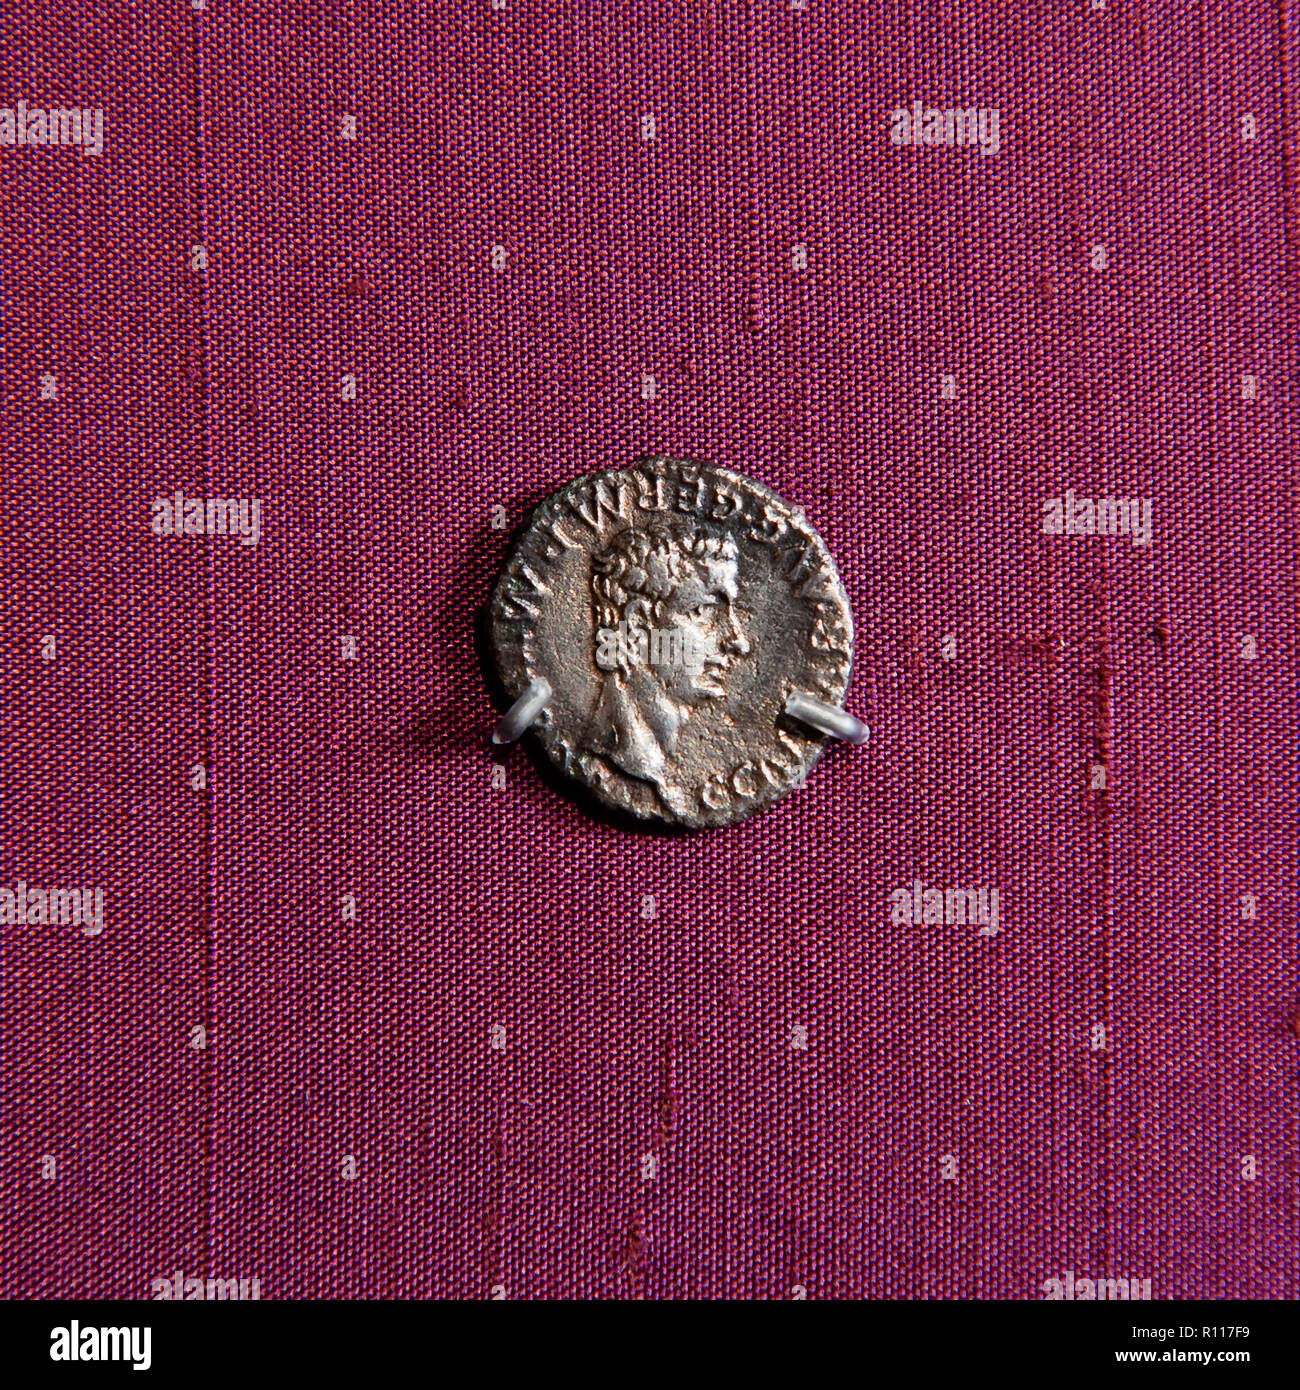 Man's profile on ancient coin - Stock Image